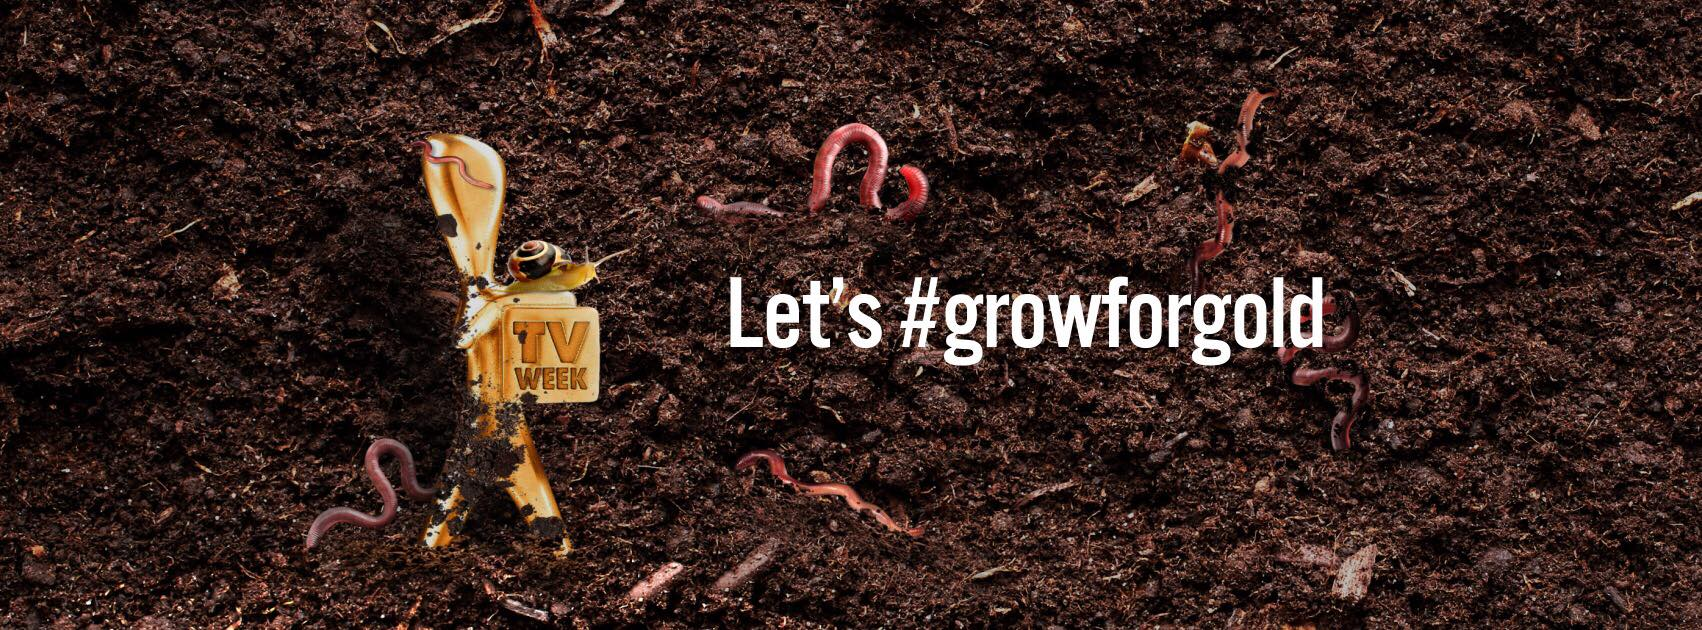 Council calls on residents to #GrowForGold